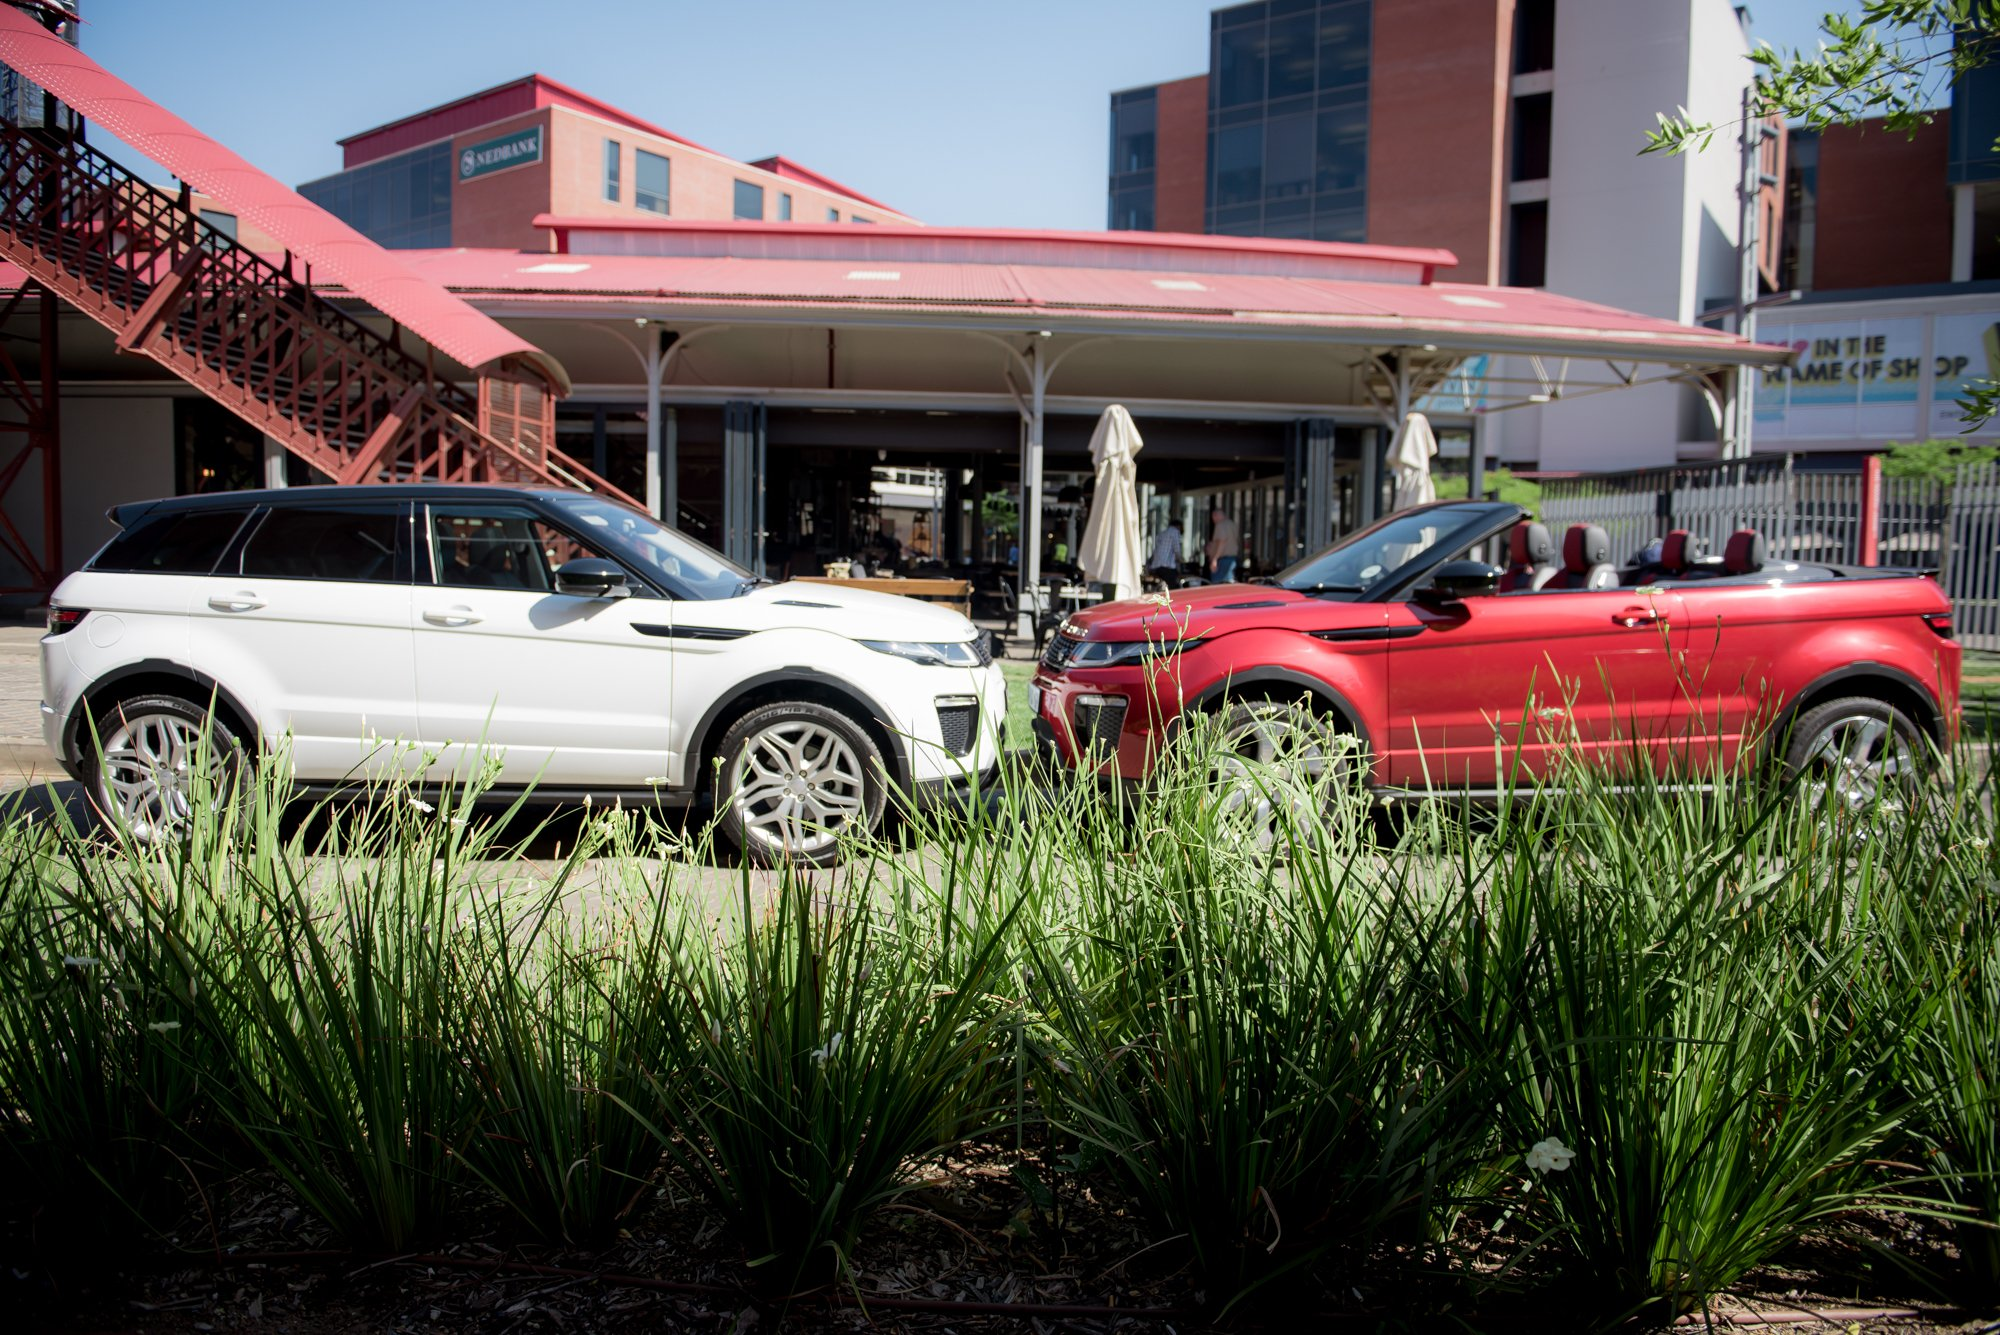 Reach All Your Health Destinations In Style With Land Rover